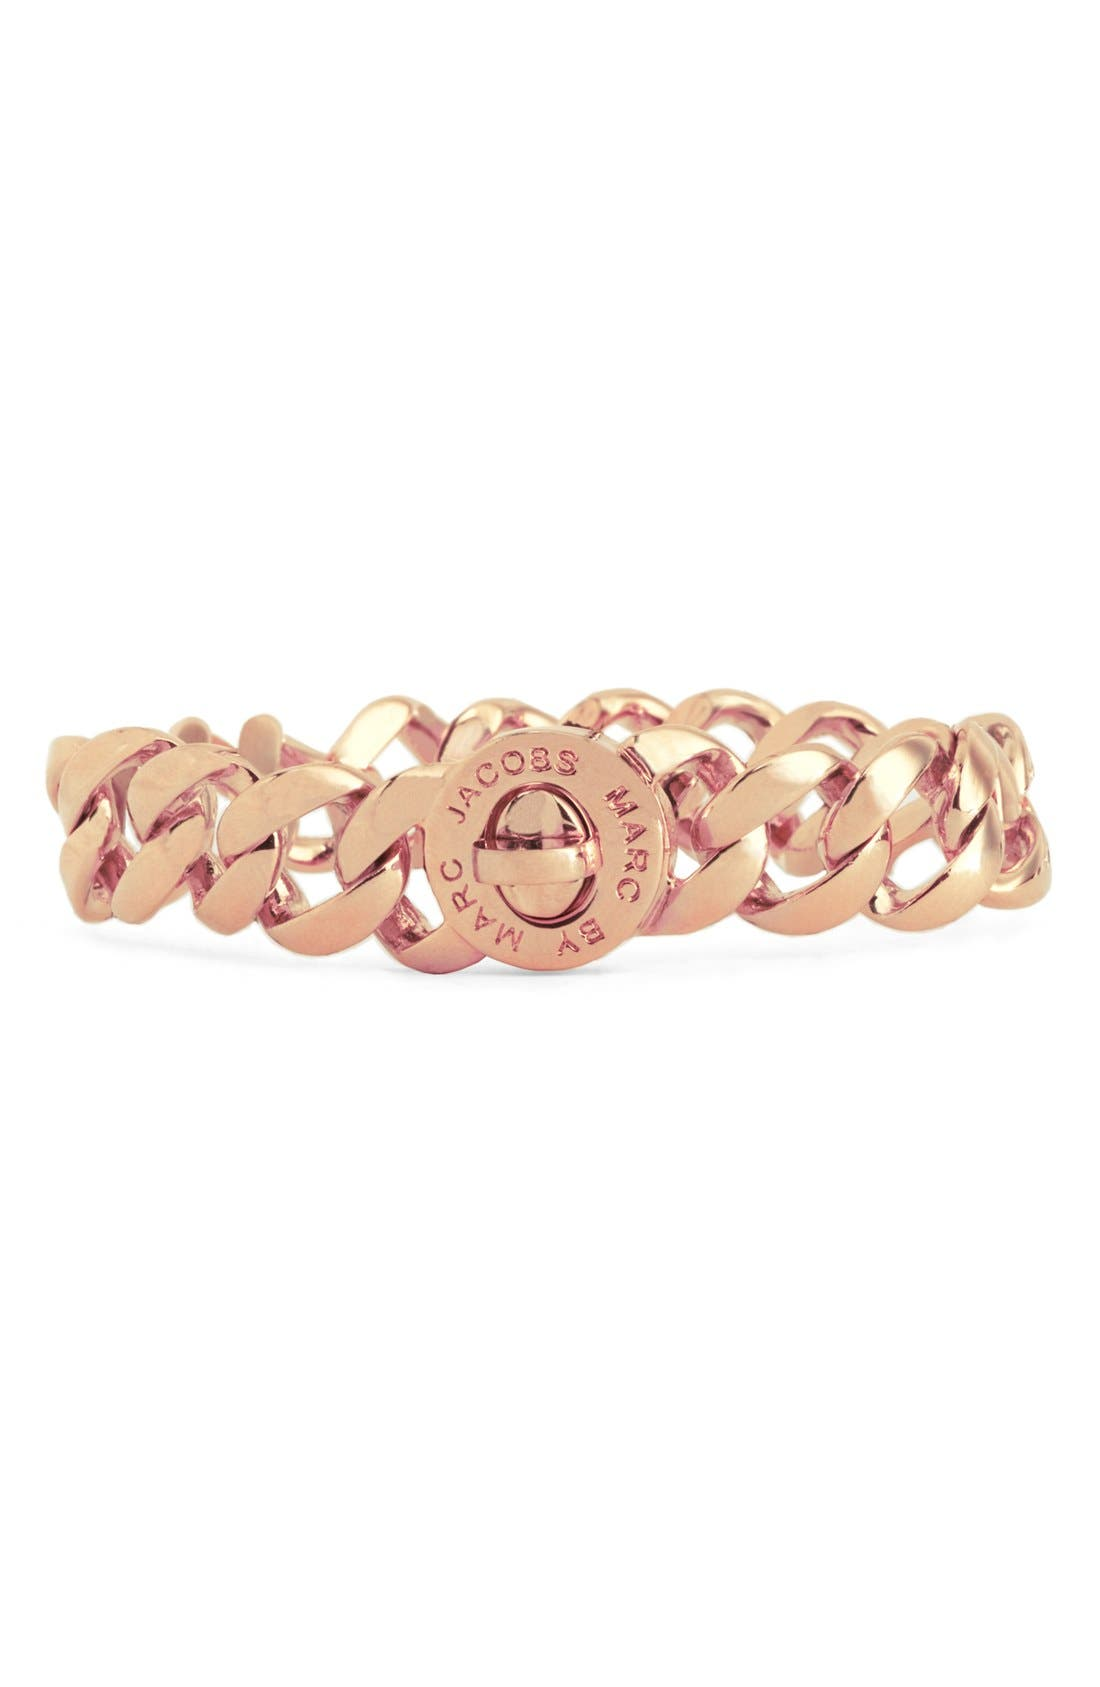 'Turnlock - Katie' Small Bracelet,                         Main,                         color, Rose Gold